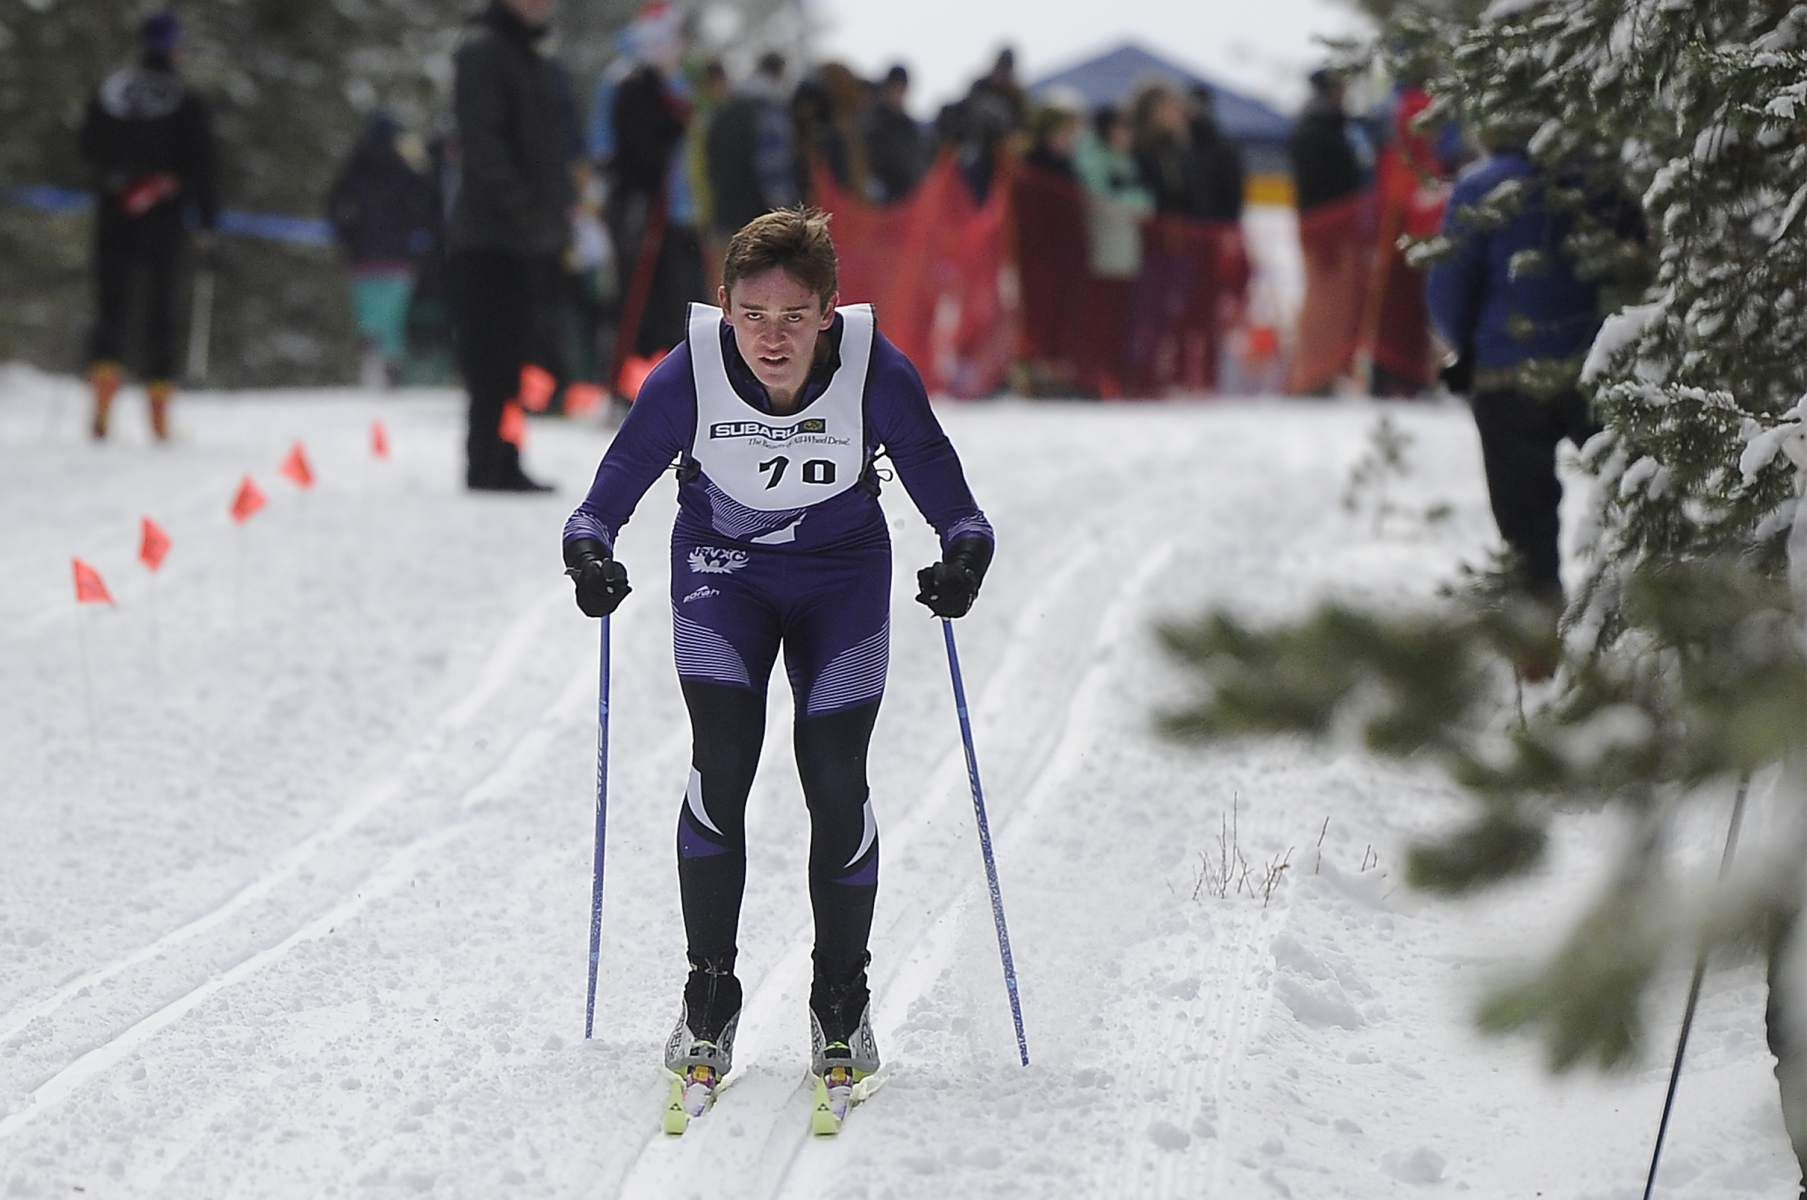 Ridgeview's Micah Capson (70) skis down the course while